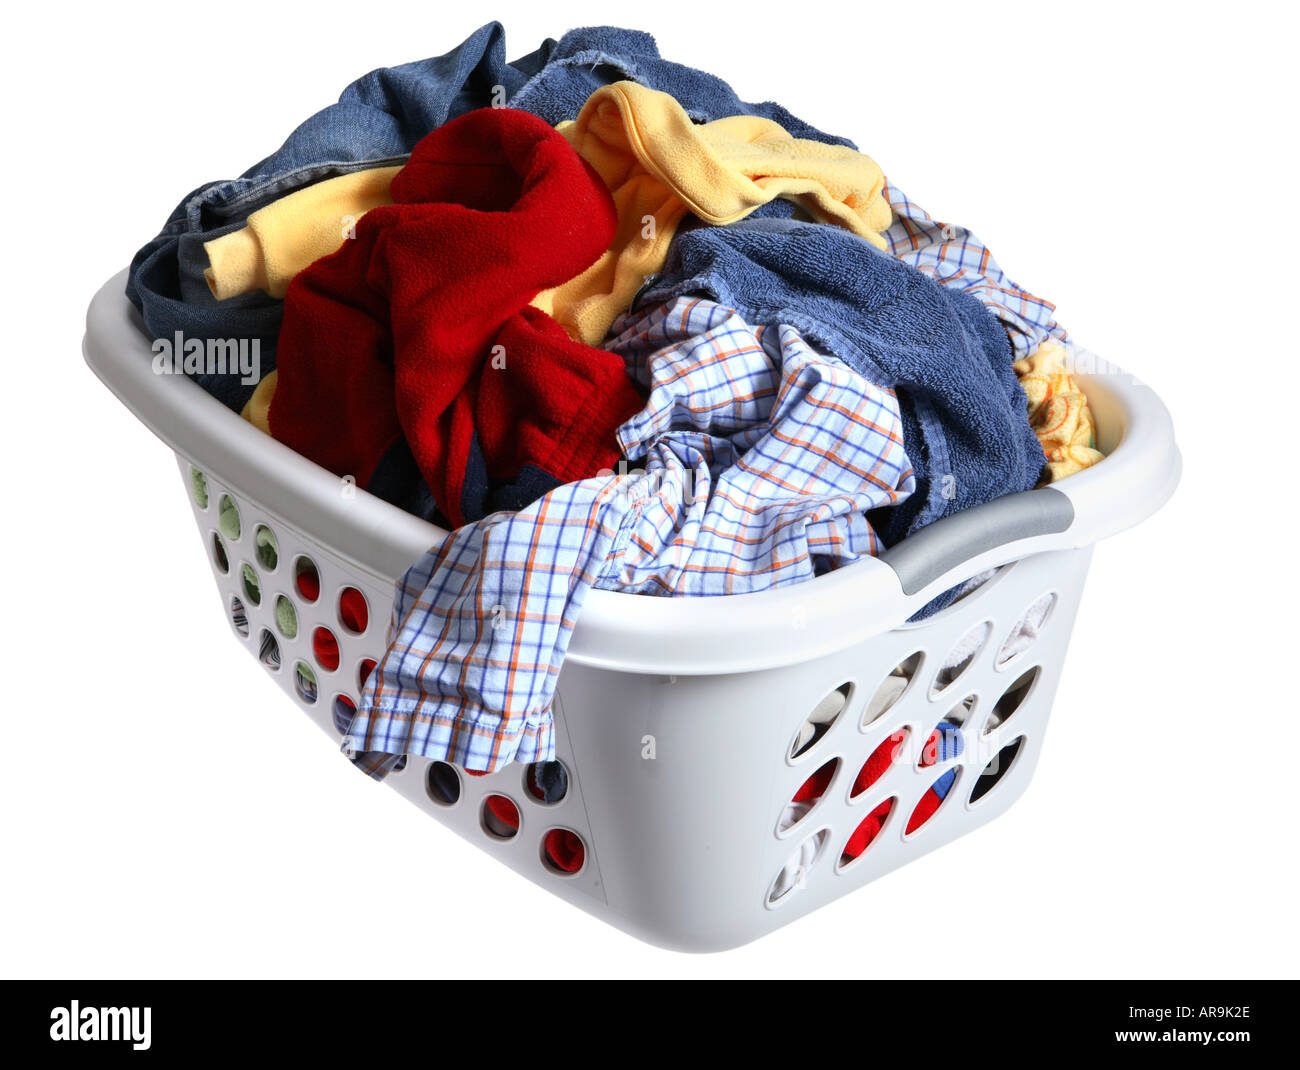 laundry basket full of dirty clothes stock image